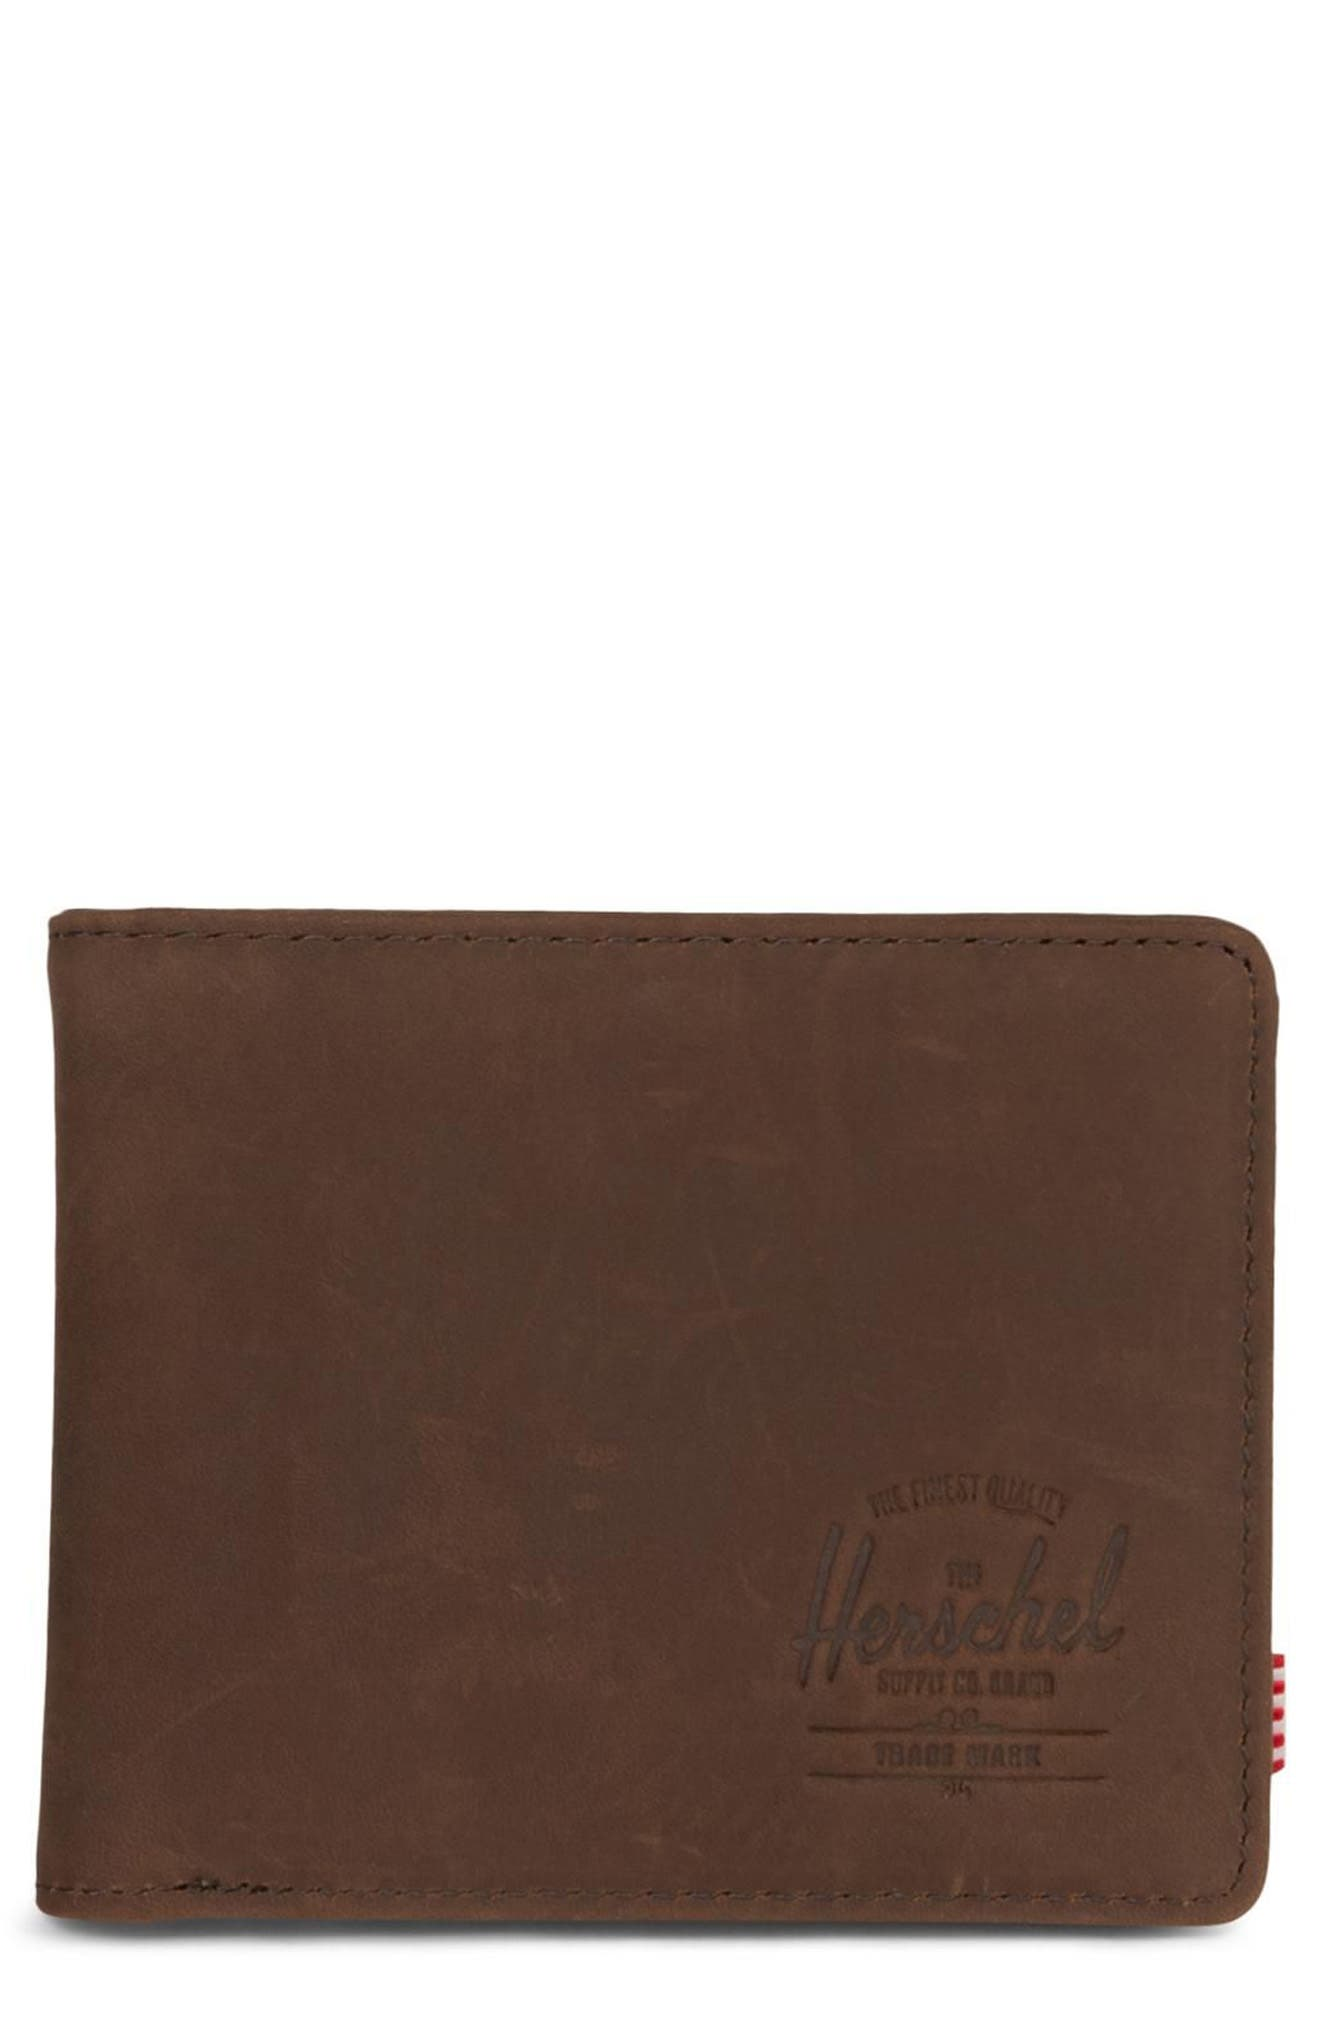 Hank Leather Wallet,                         Main,                         color, NUBUCK BROWN